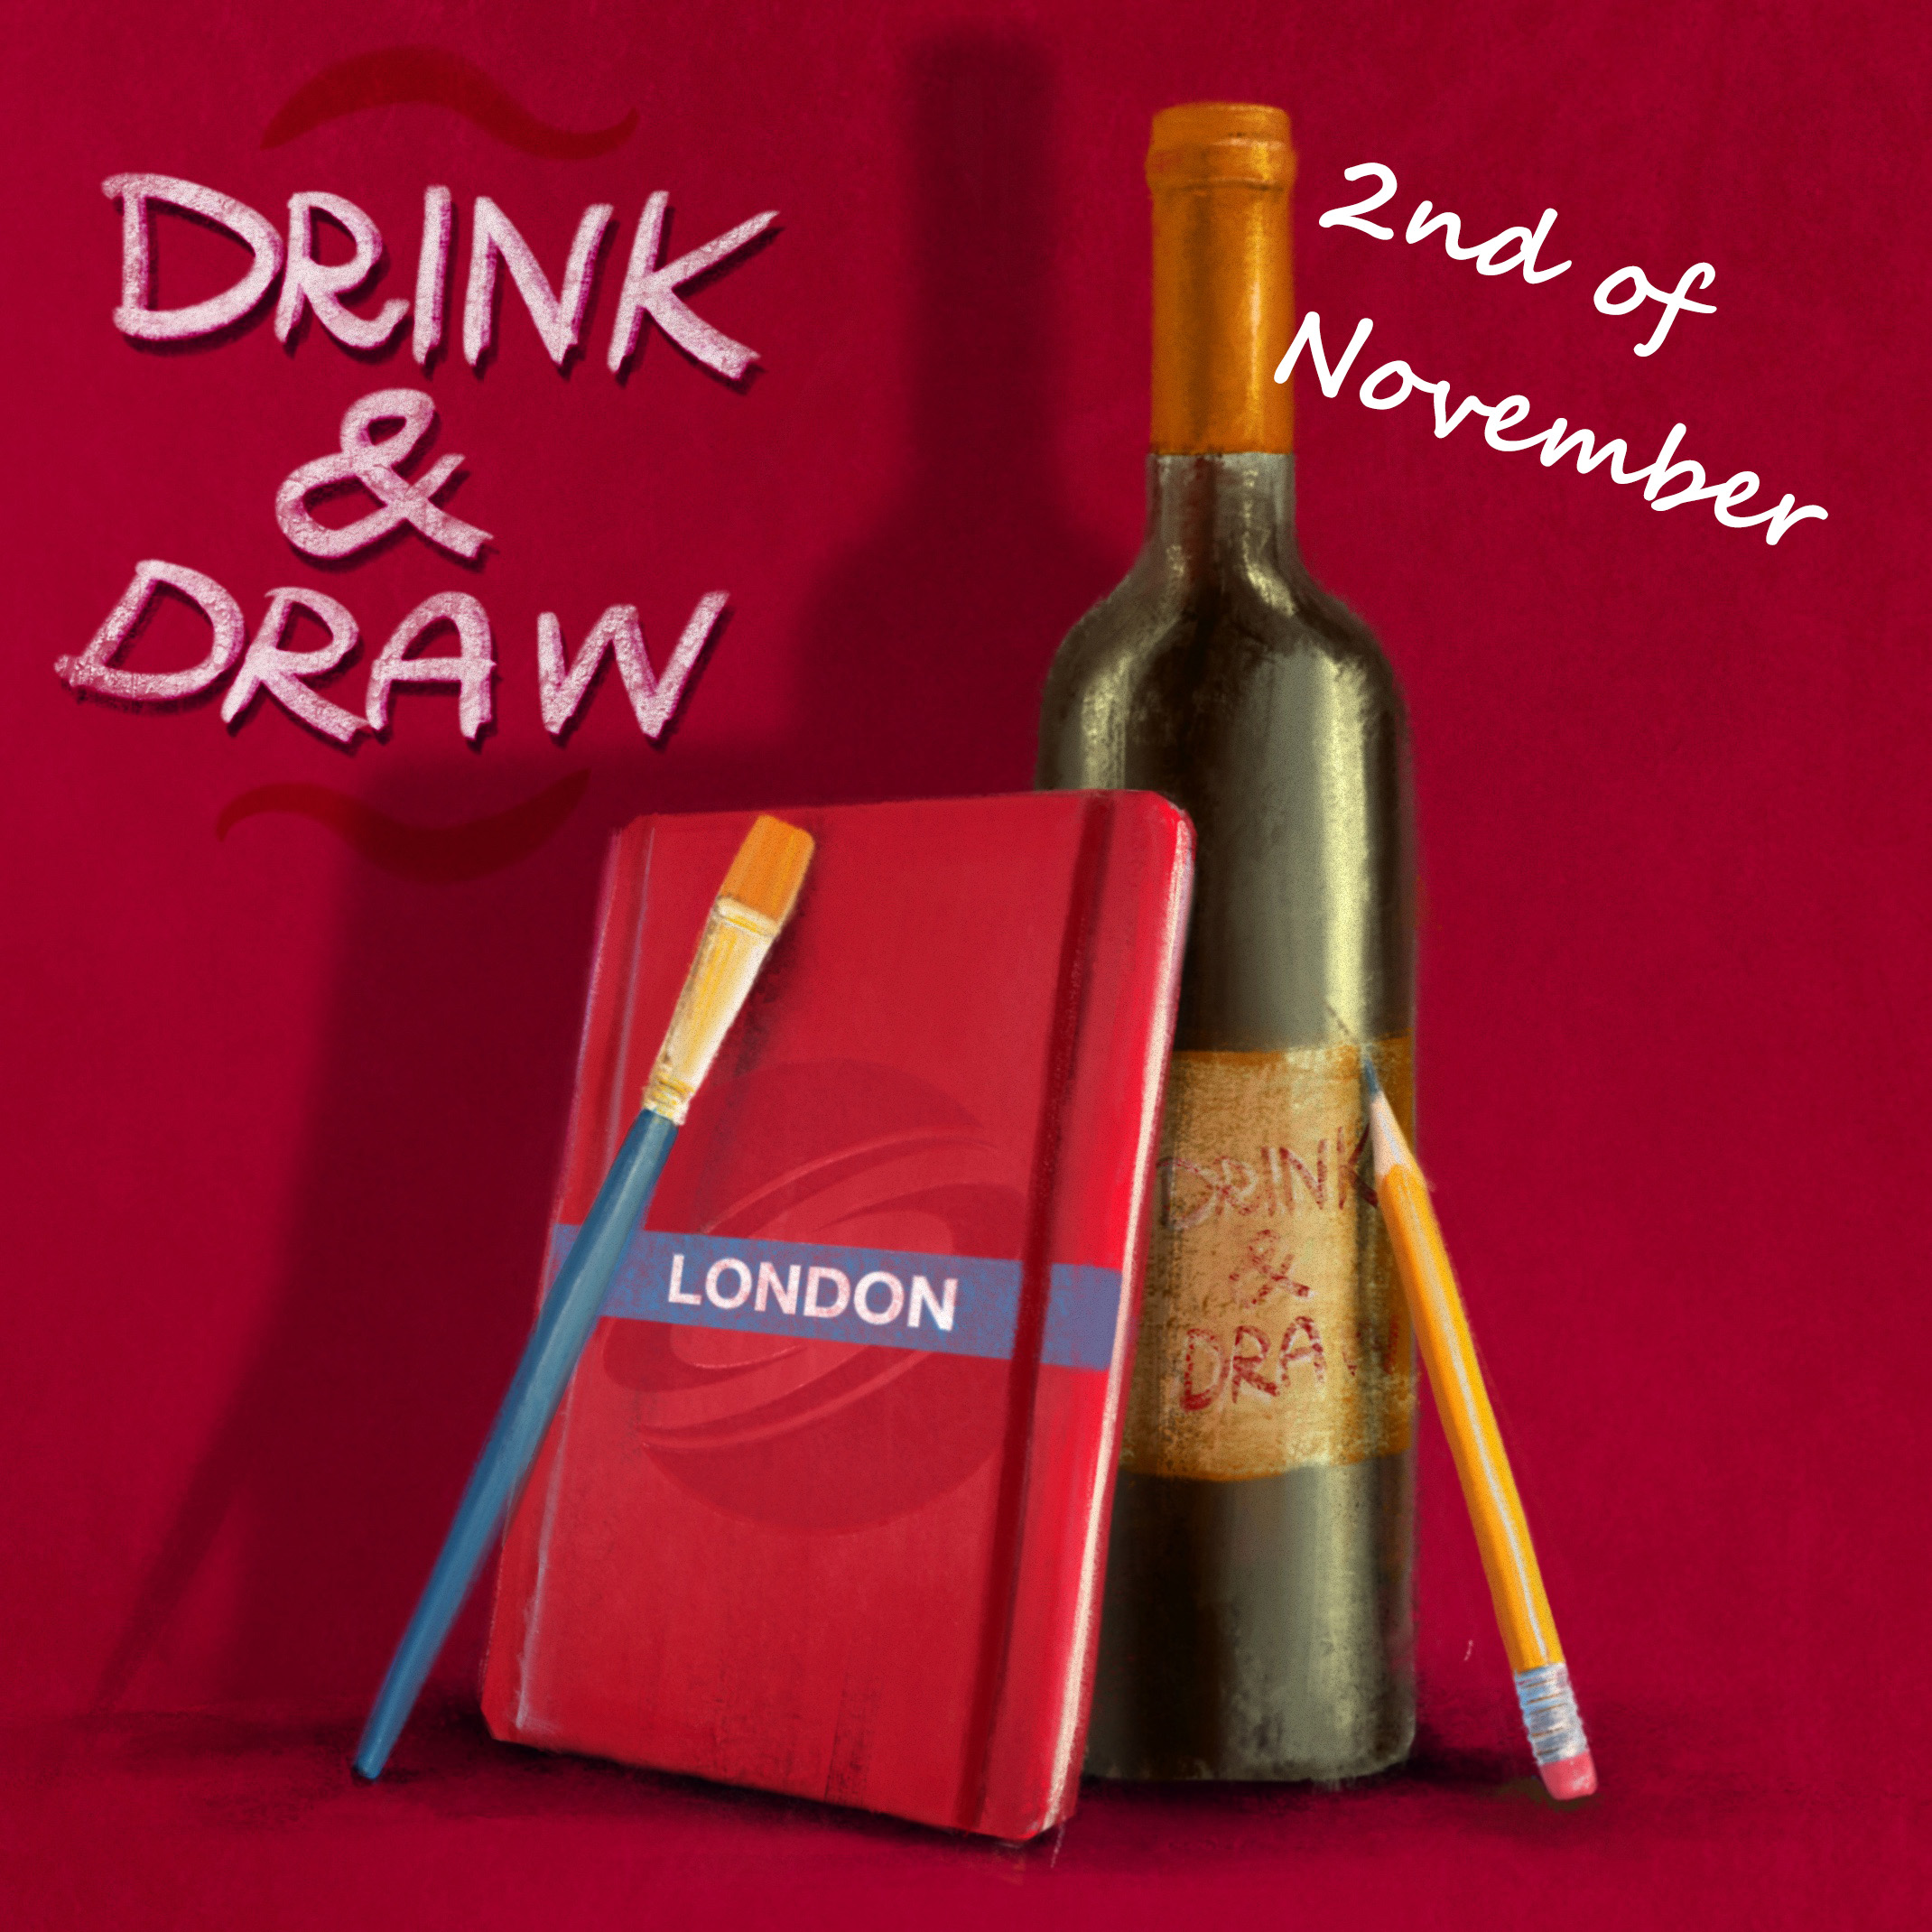 DRINK & DRAW November- Zoom Edition Poster